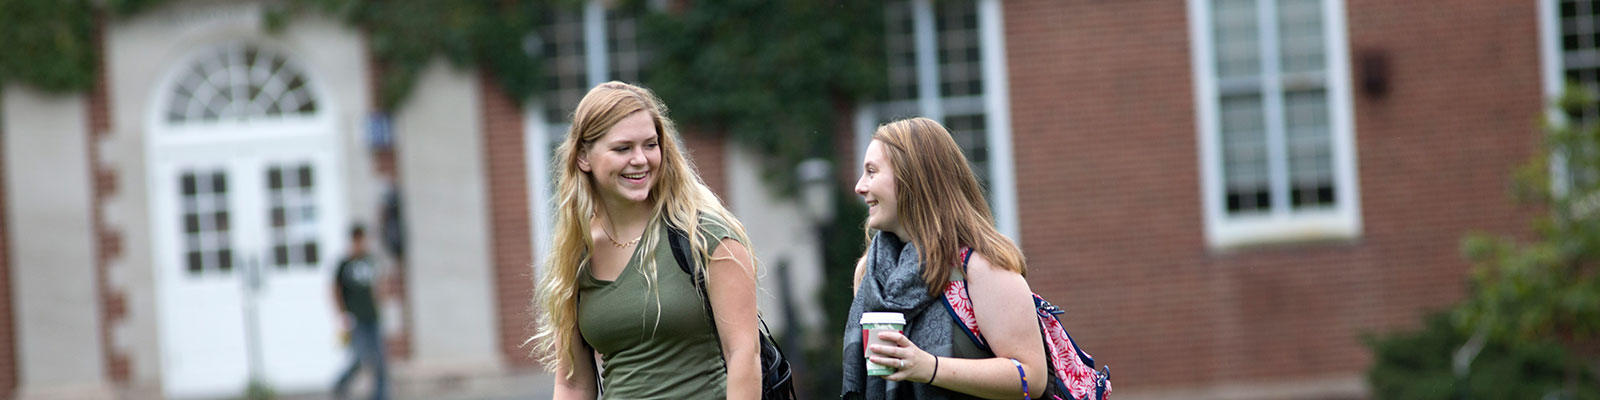 Smiling female students talking while walking